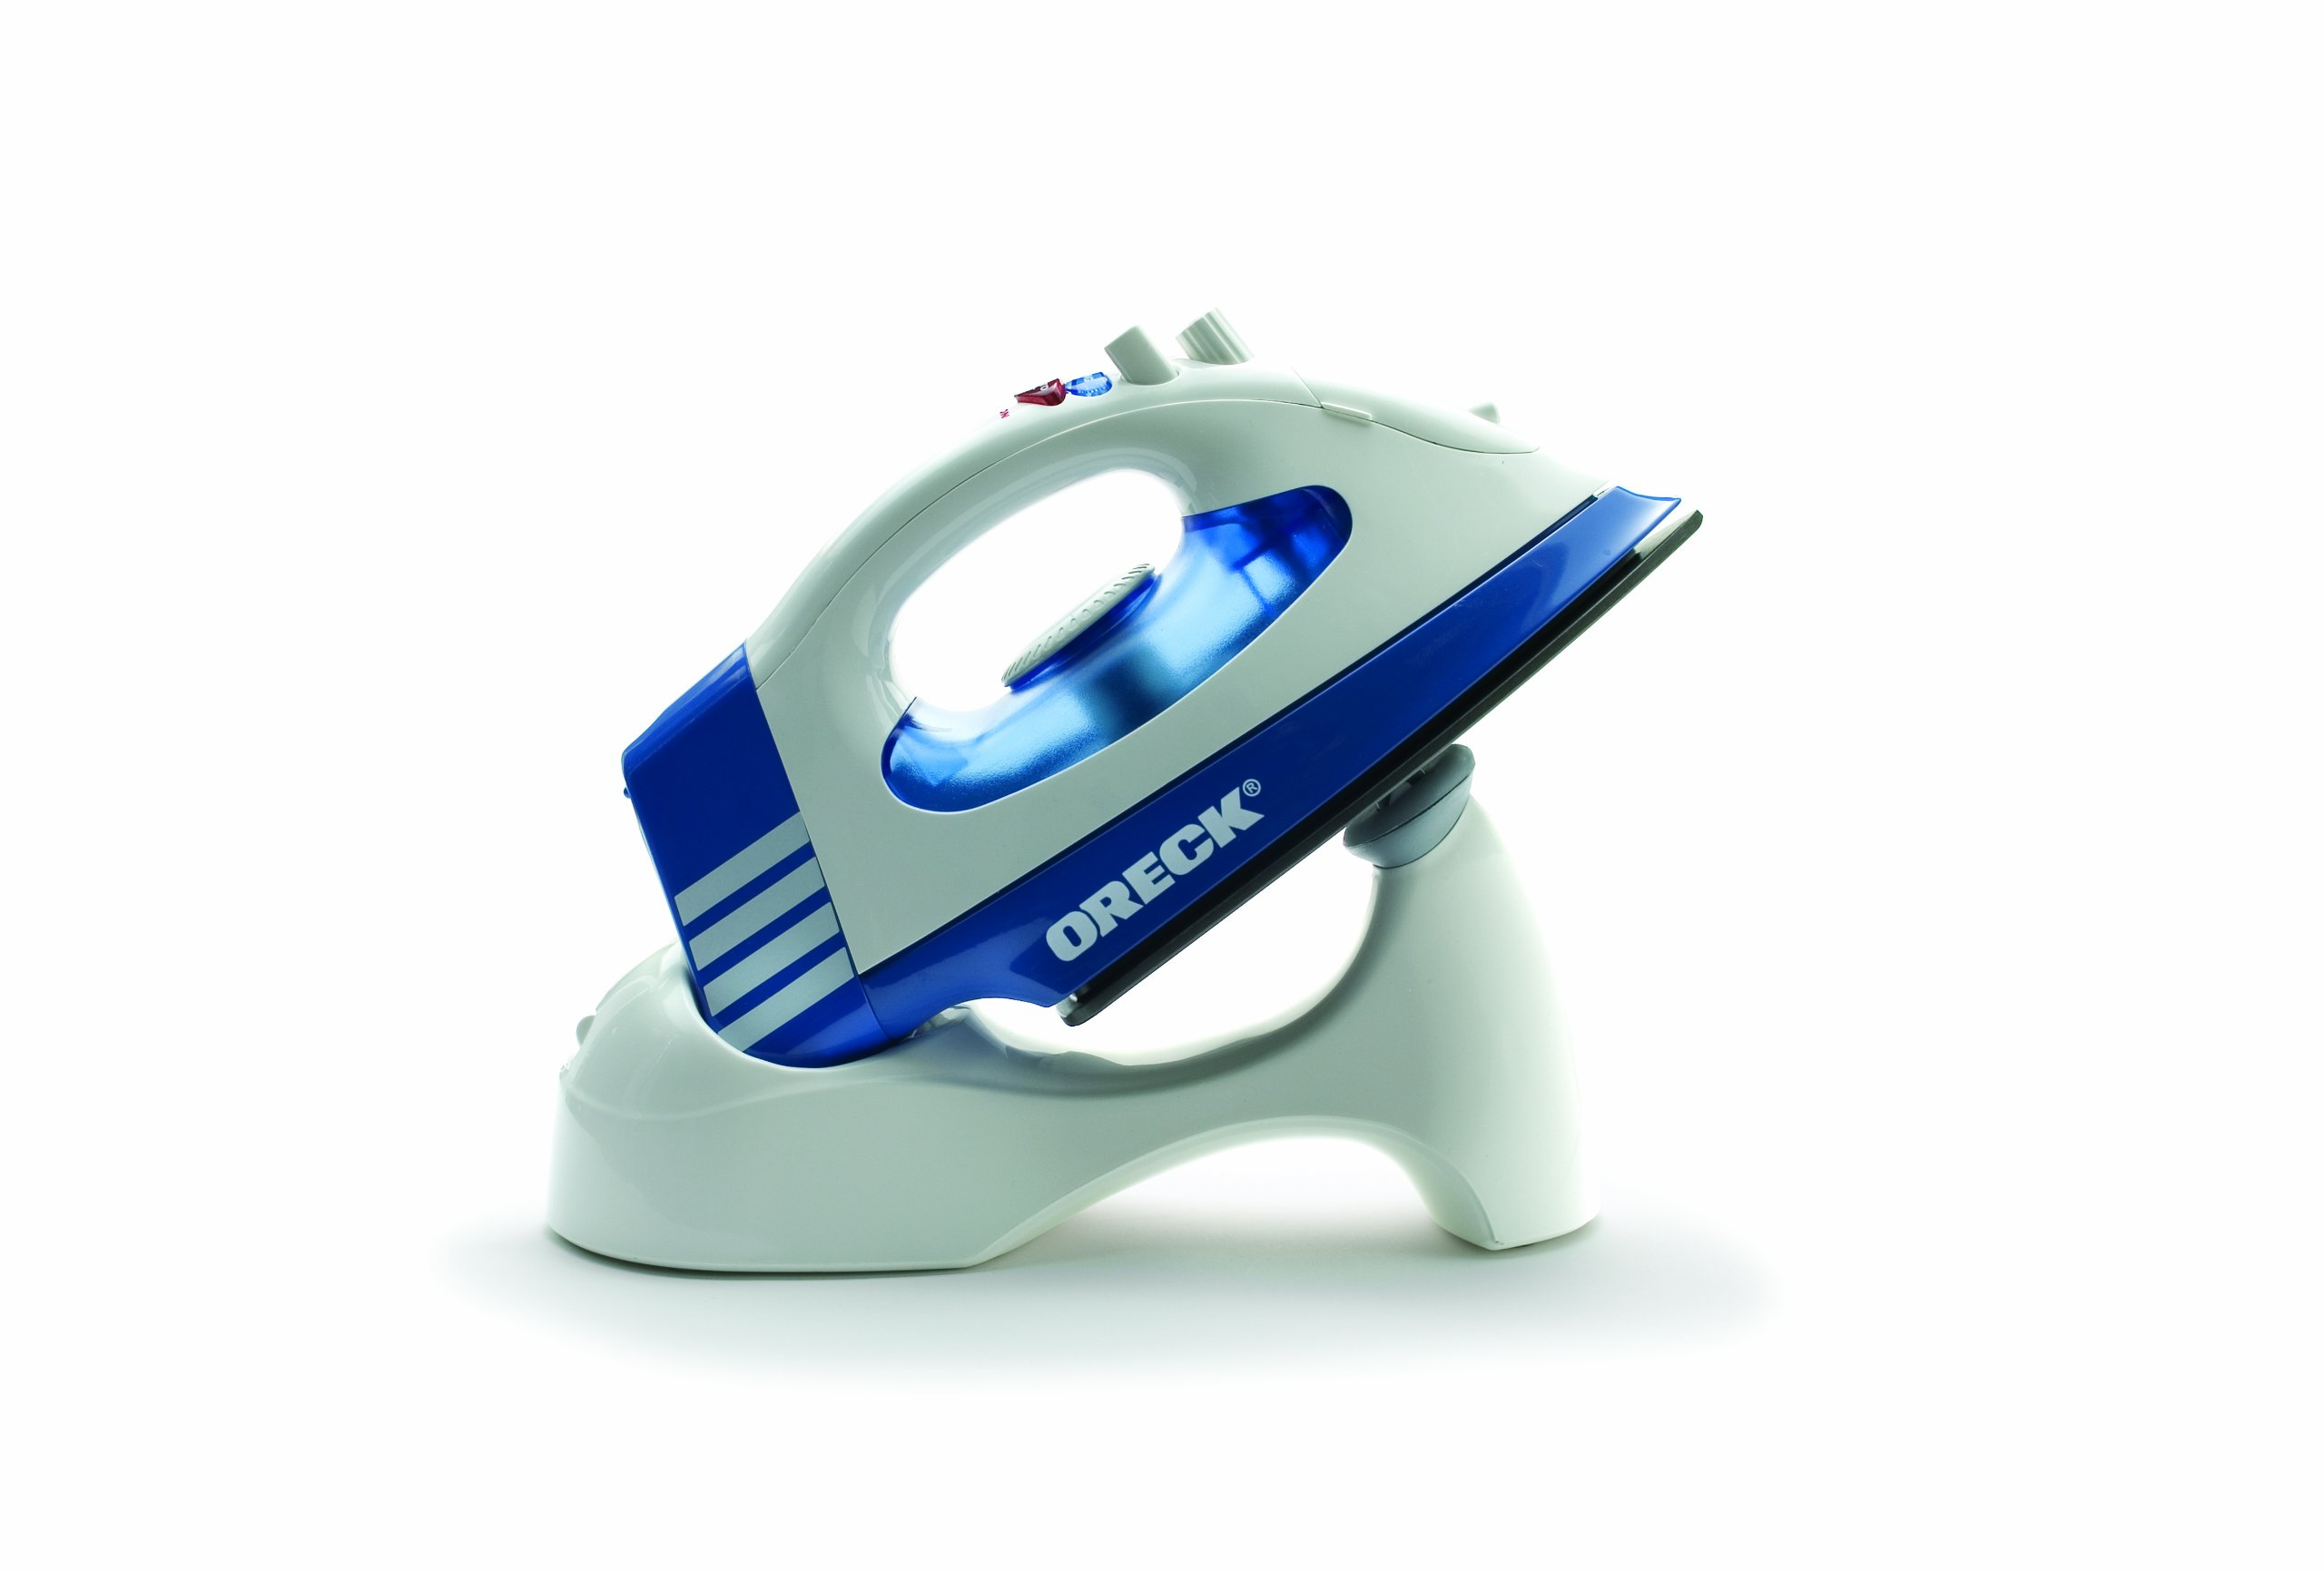 Oreck Cordless Speed Iron